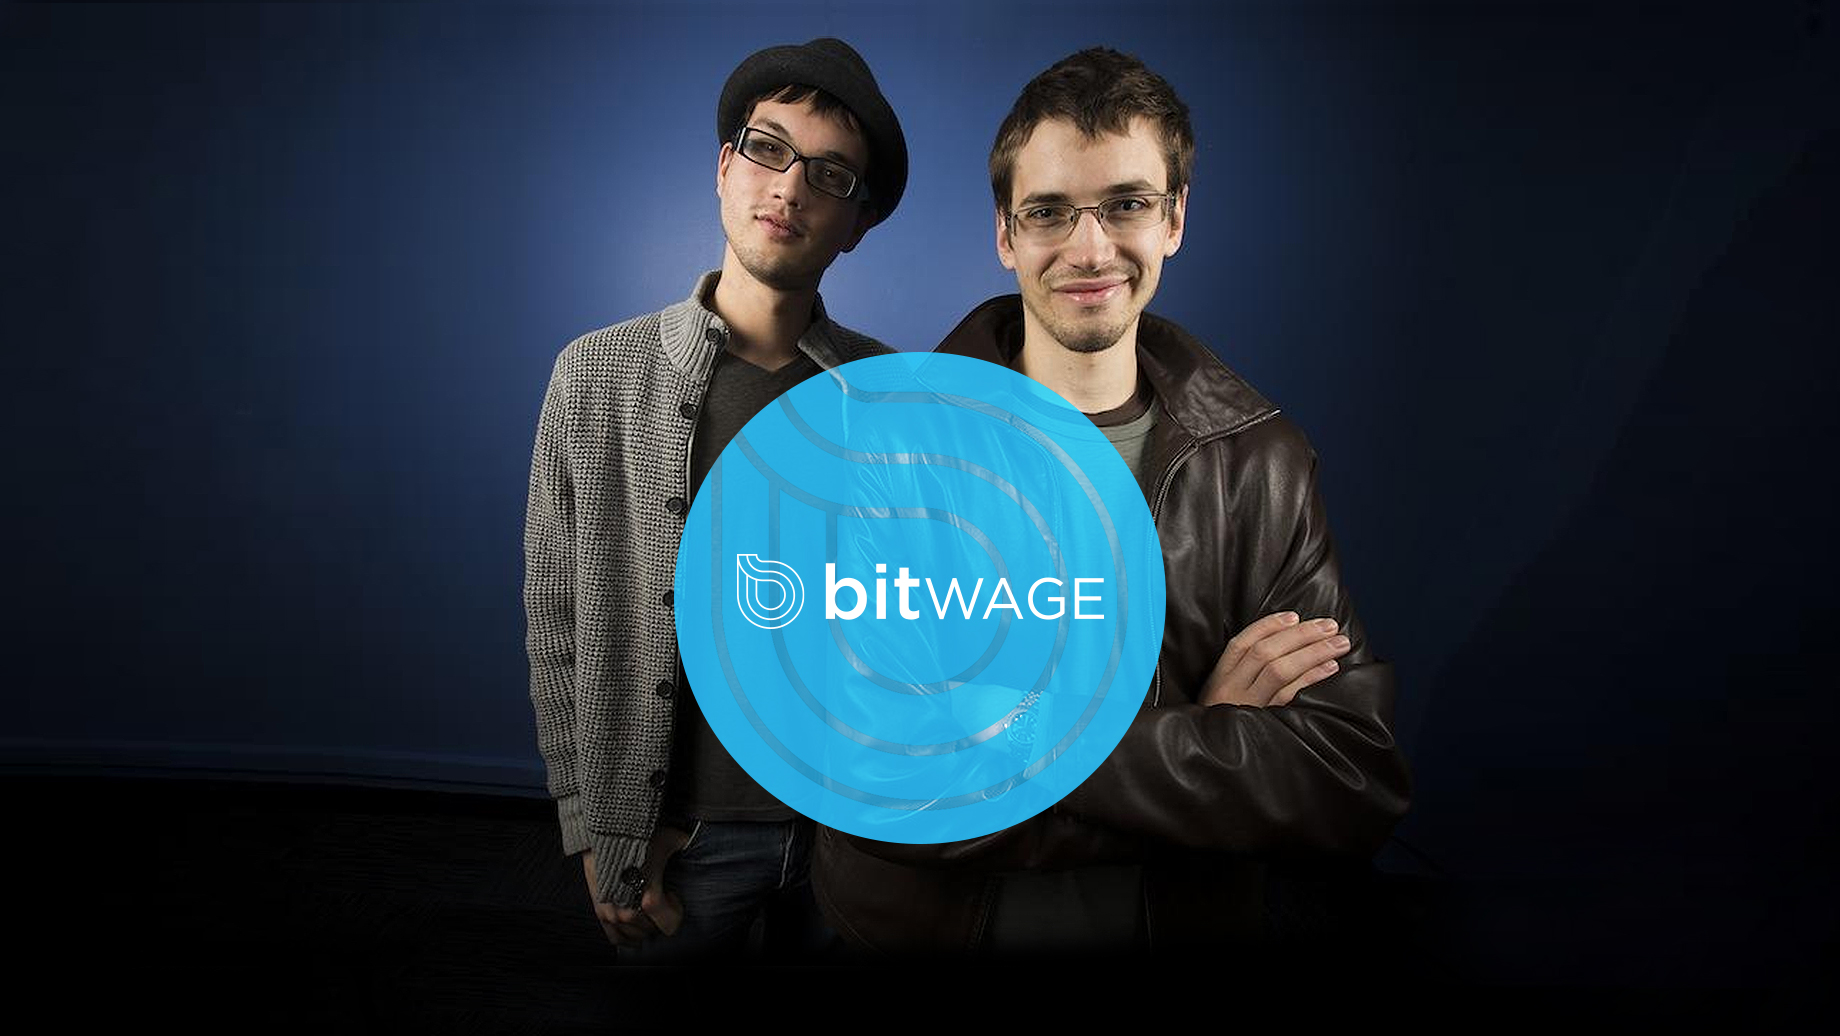 Bitwage live on BnkToTheFuture. for qualifying investors